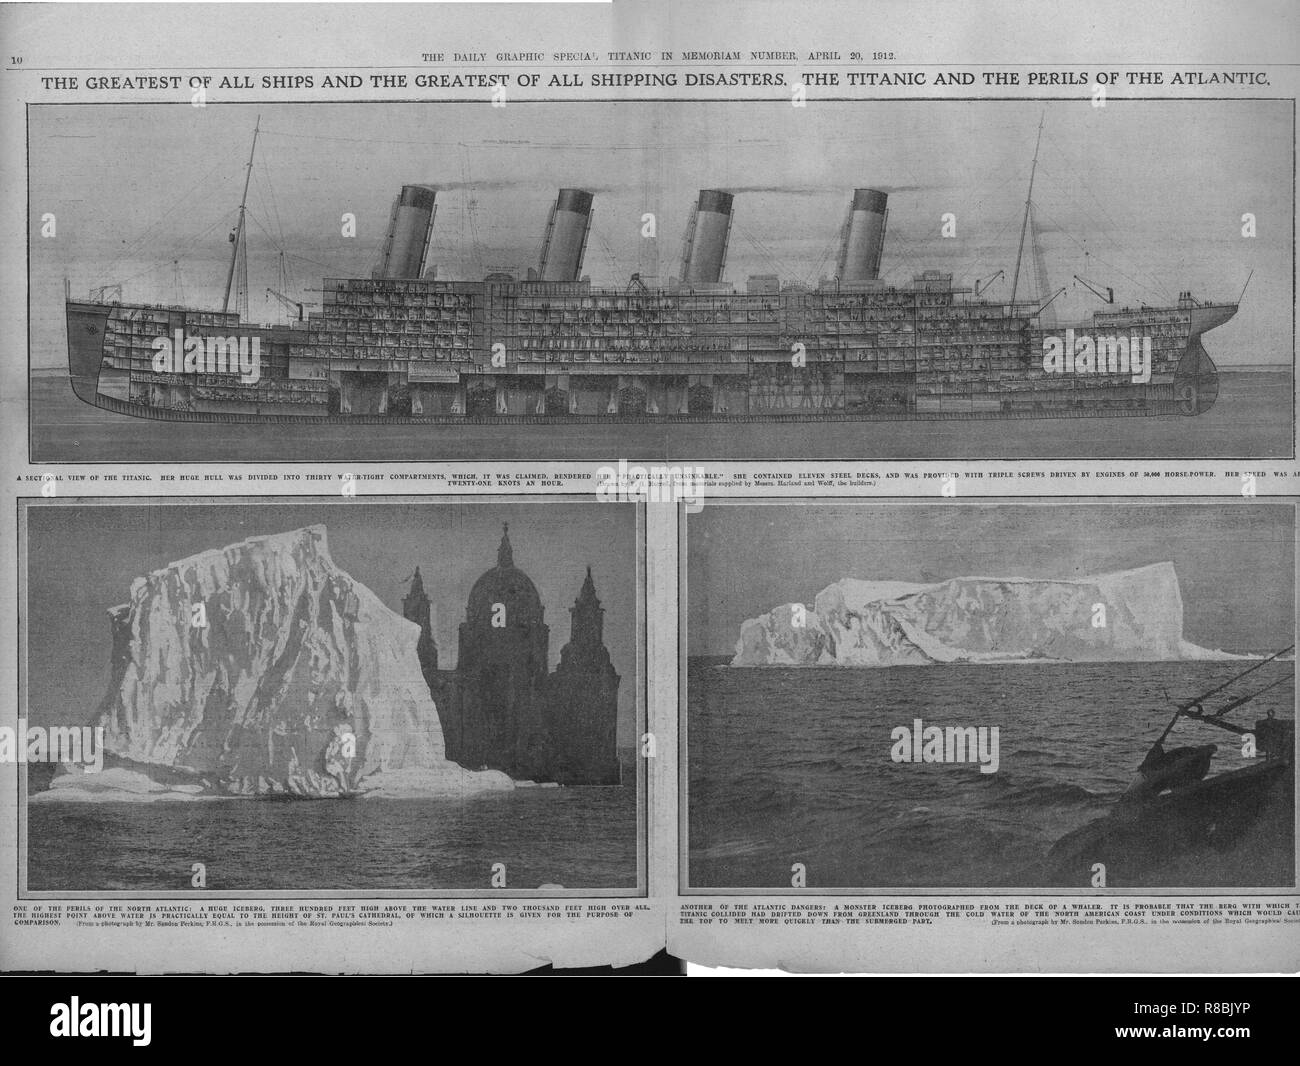 Sectional Diagram Of The Titanic And Icebergs April 20 1912